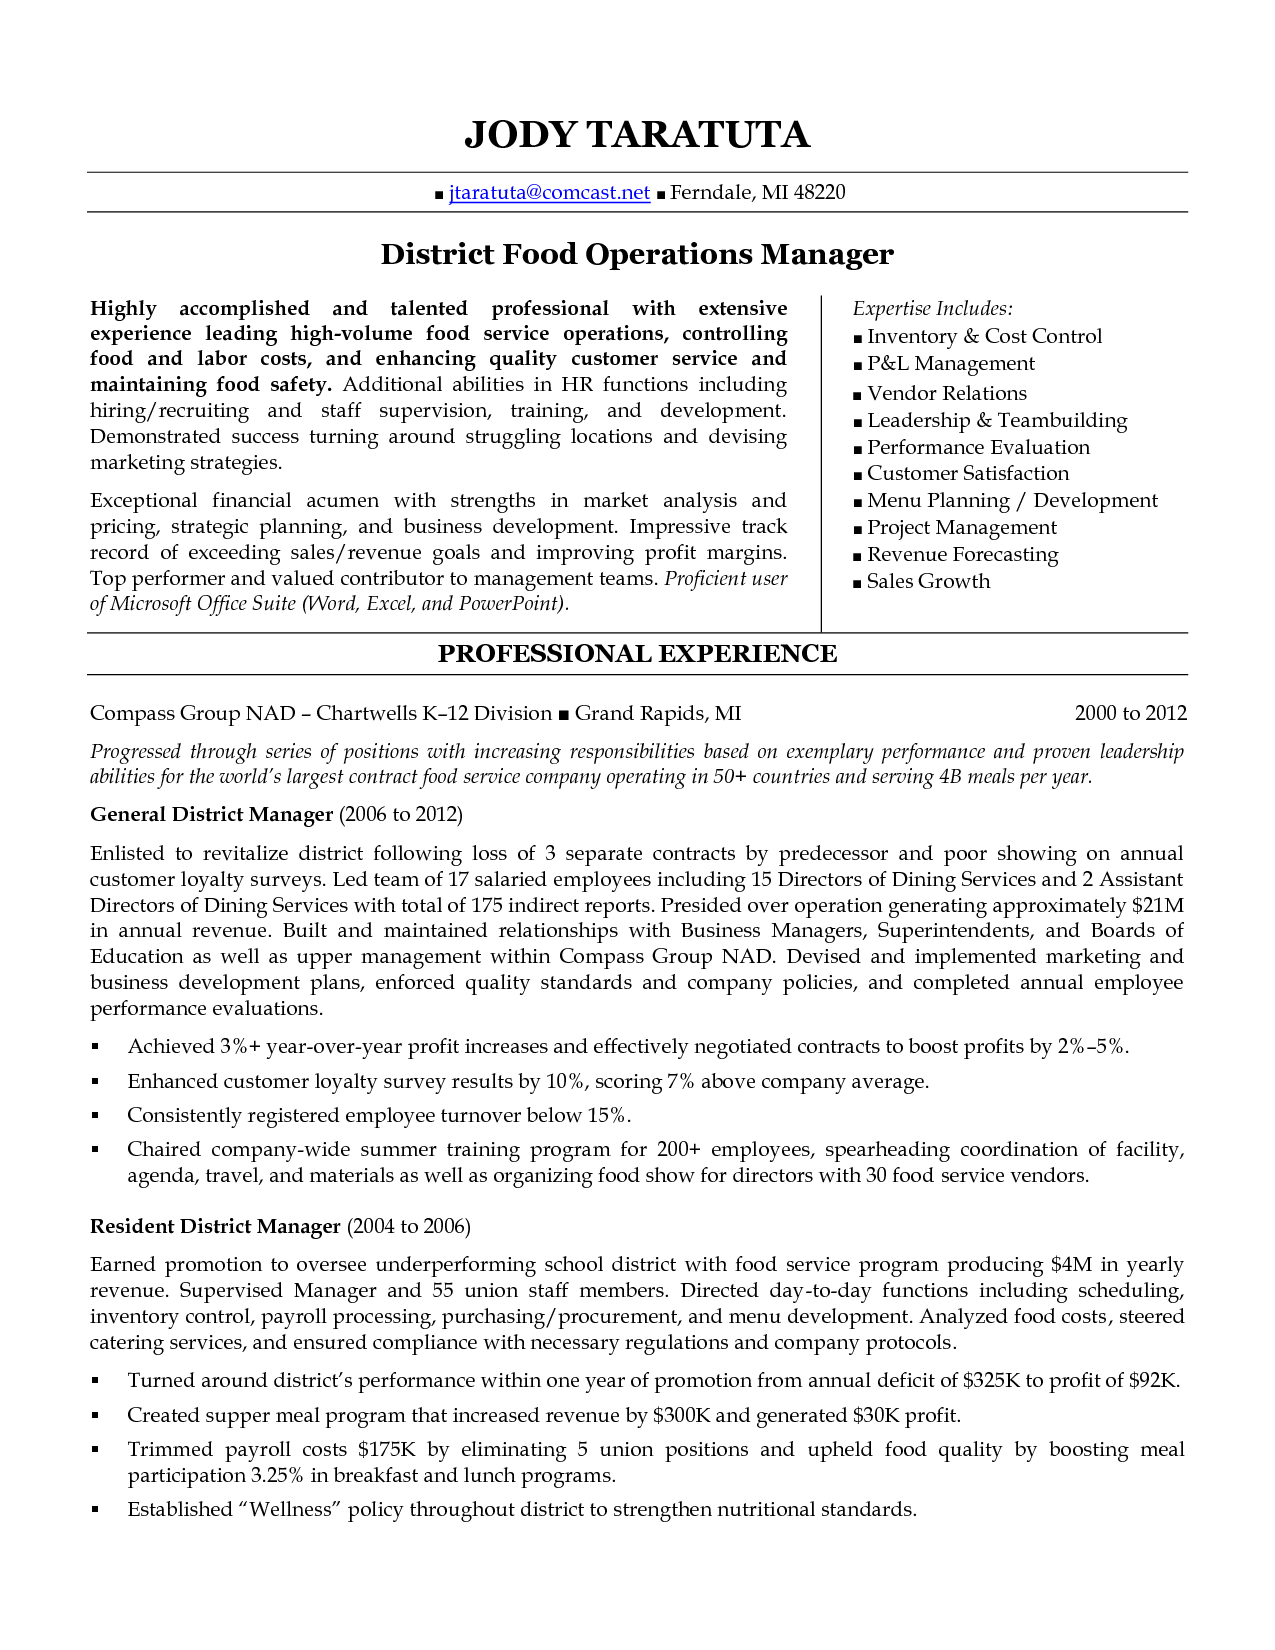 Restaurant Manager Resume Examples Food Service Management Resume